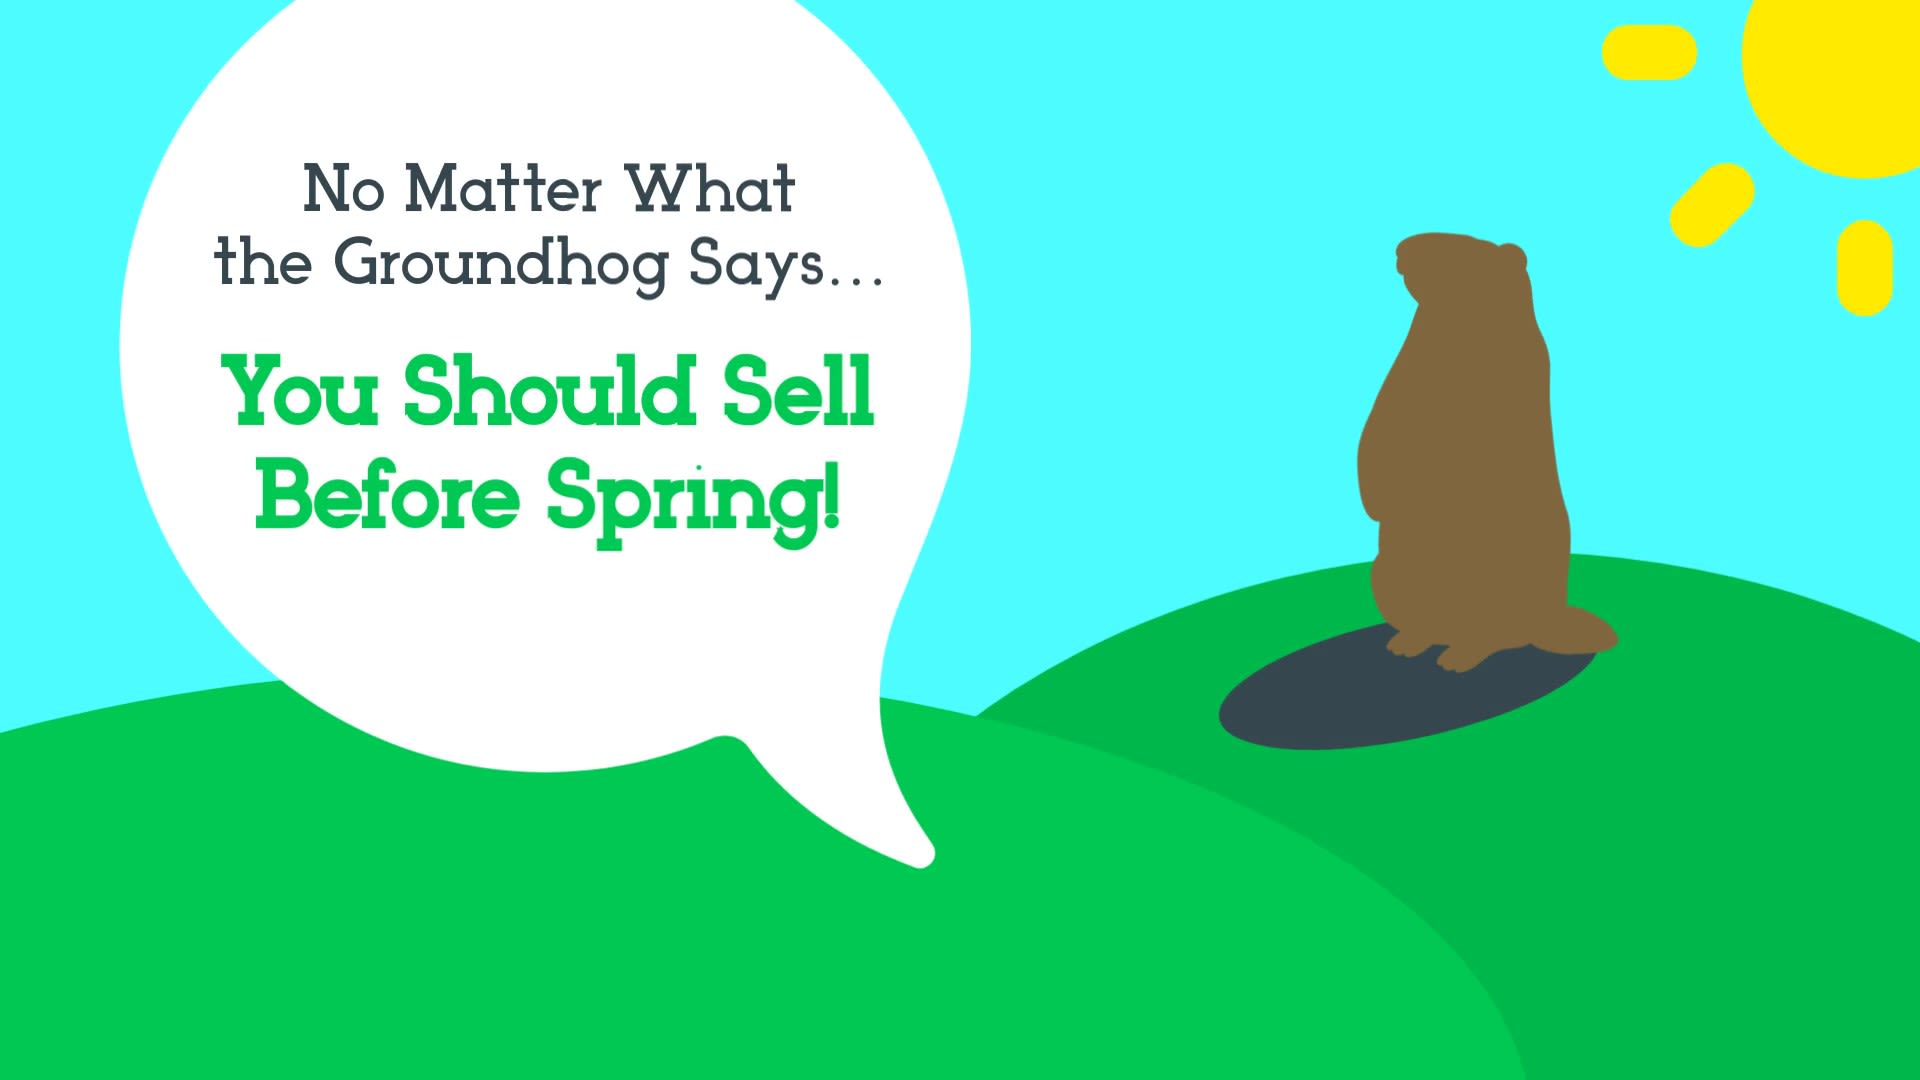 No Matter What the Groundhog Says… You Should Sell Before Spring!